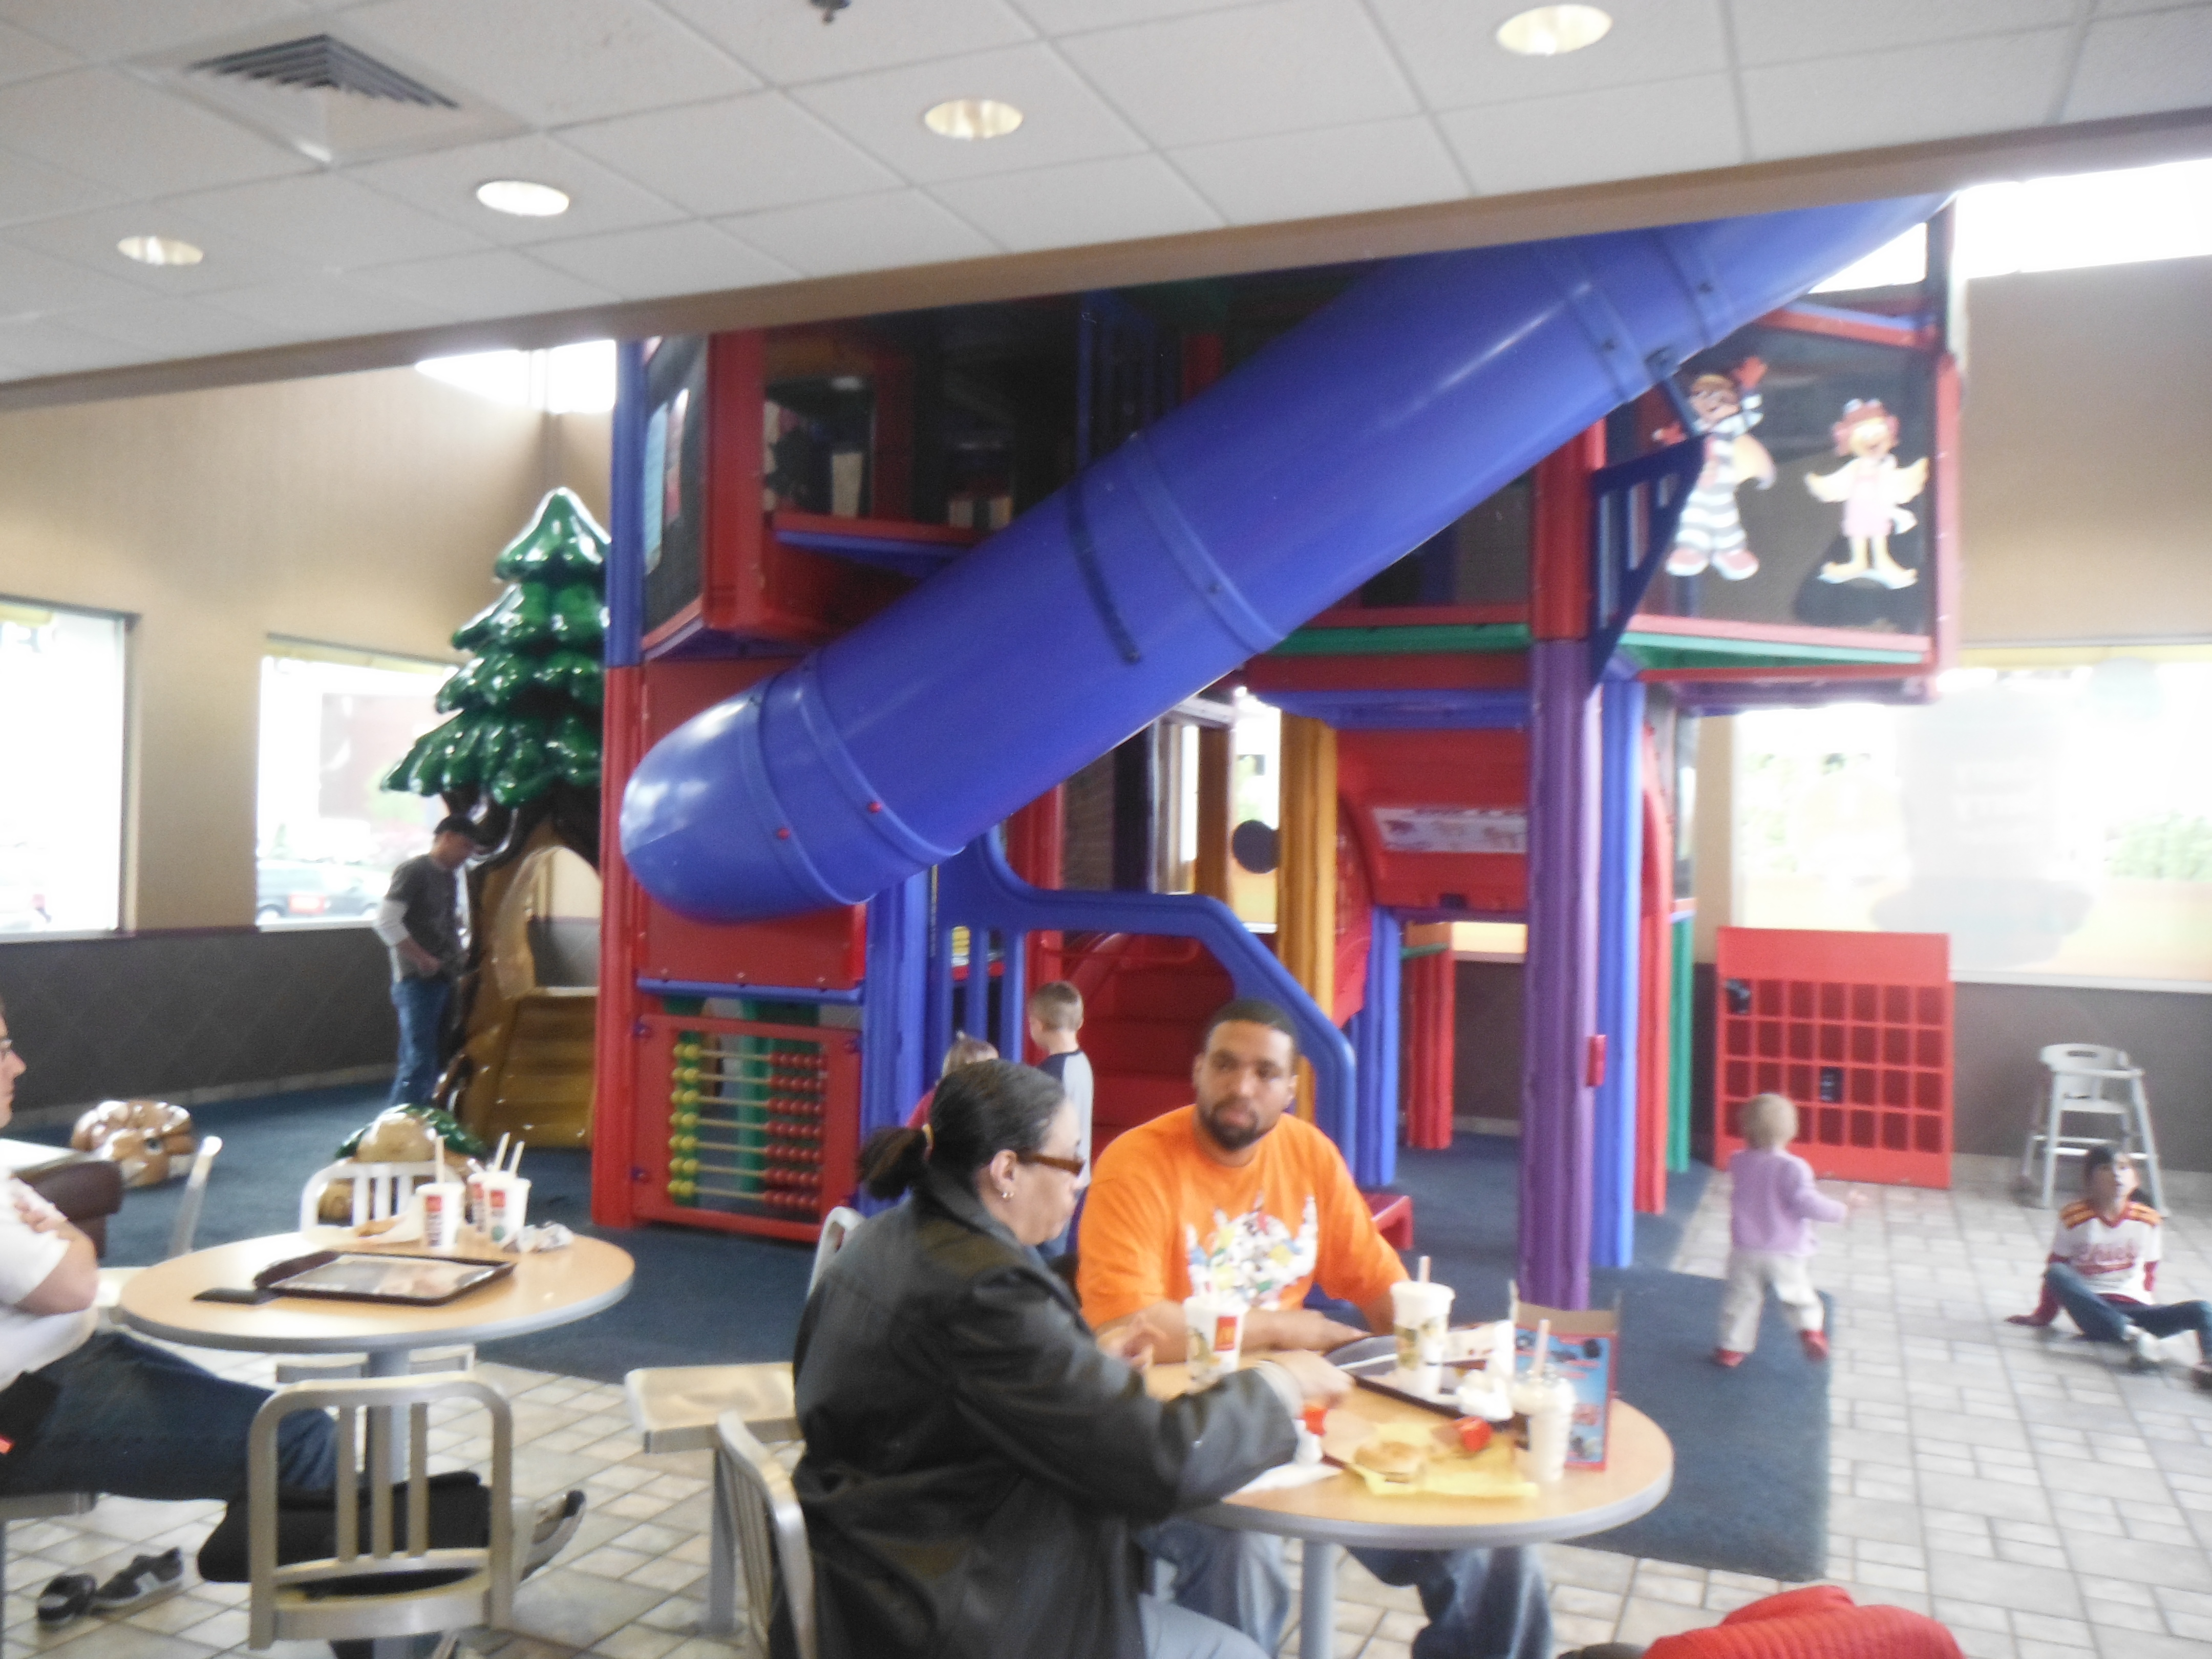 Mcdonalds play place omaha